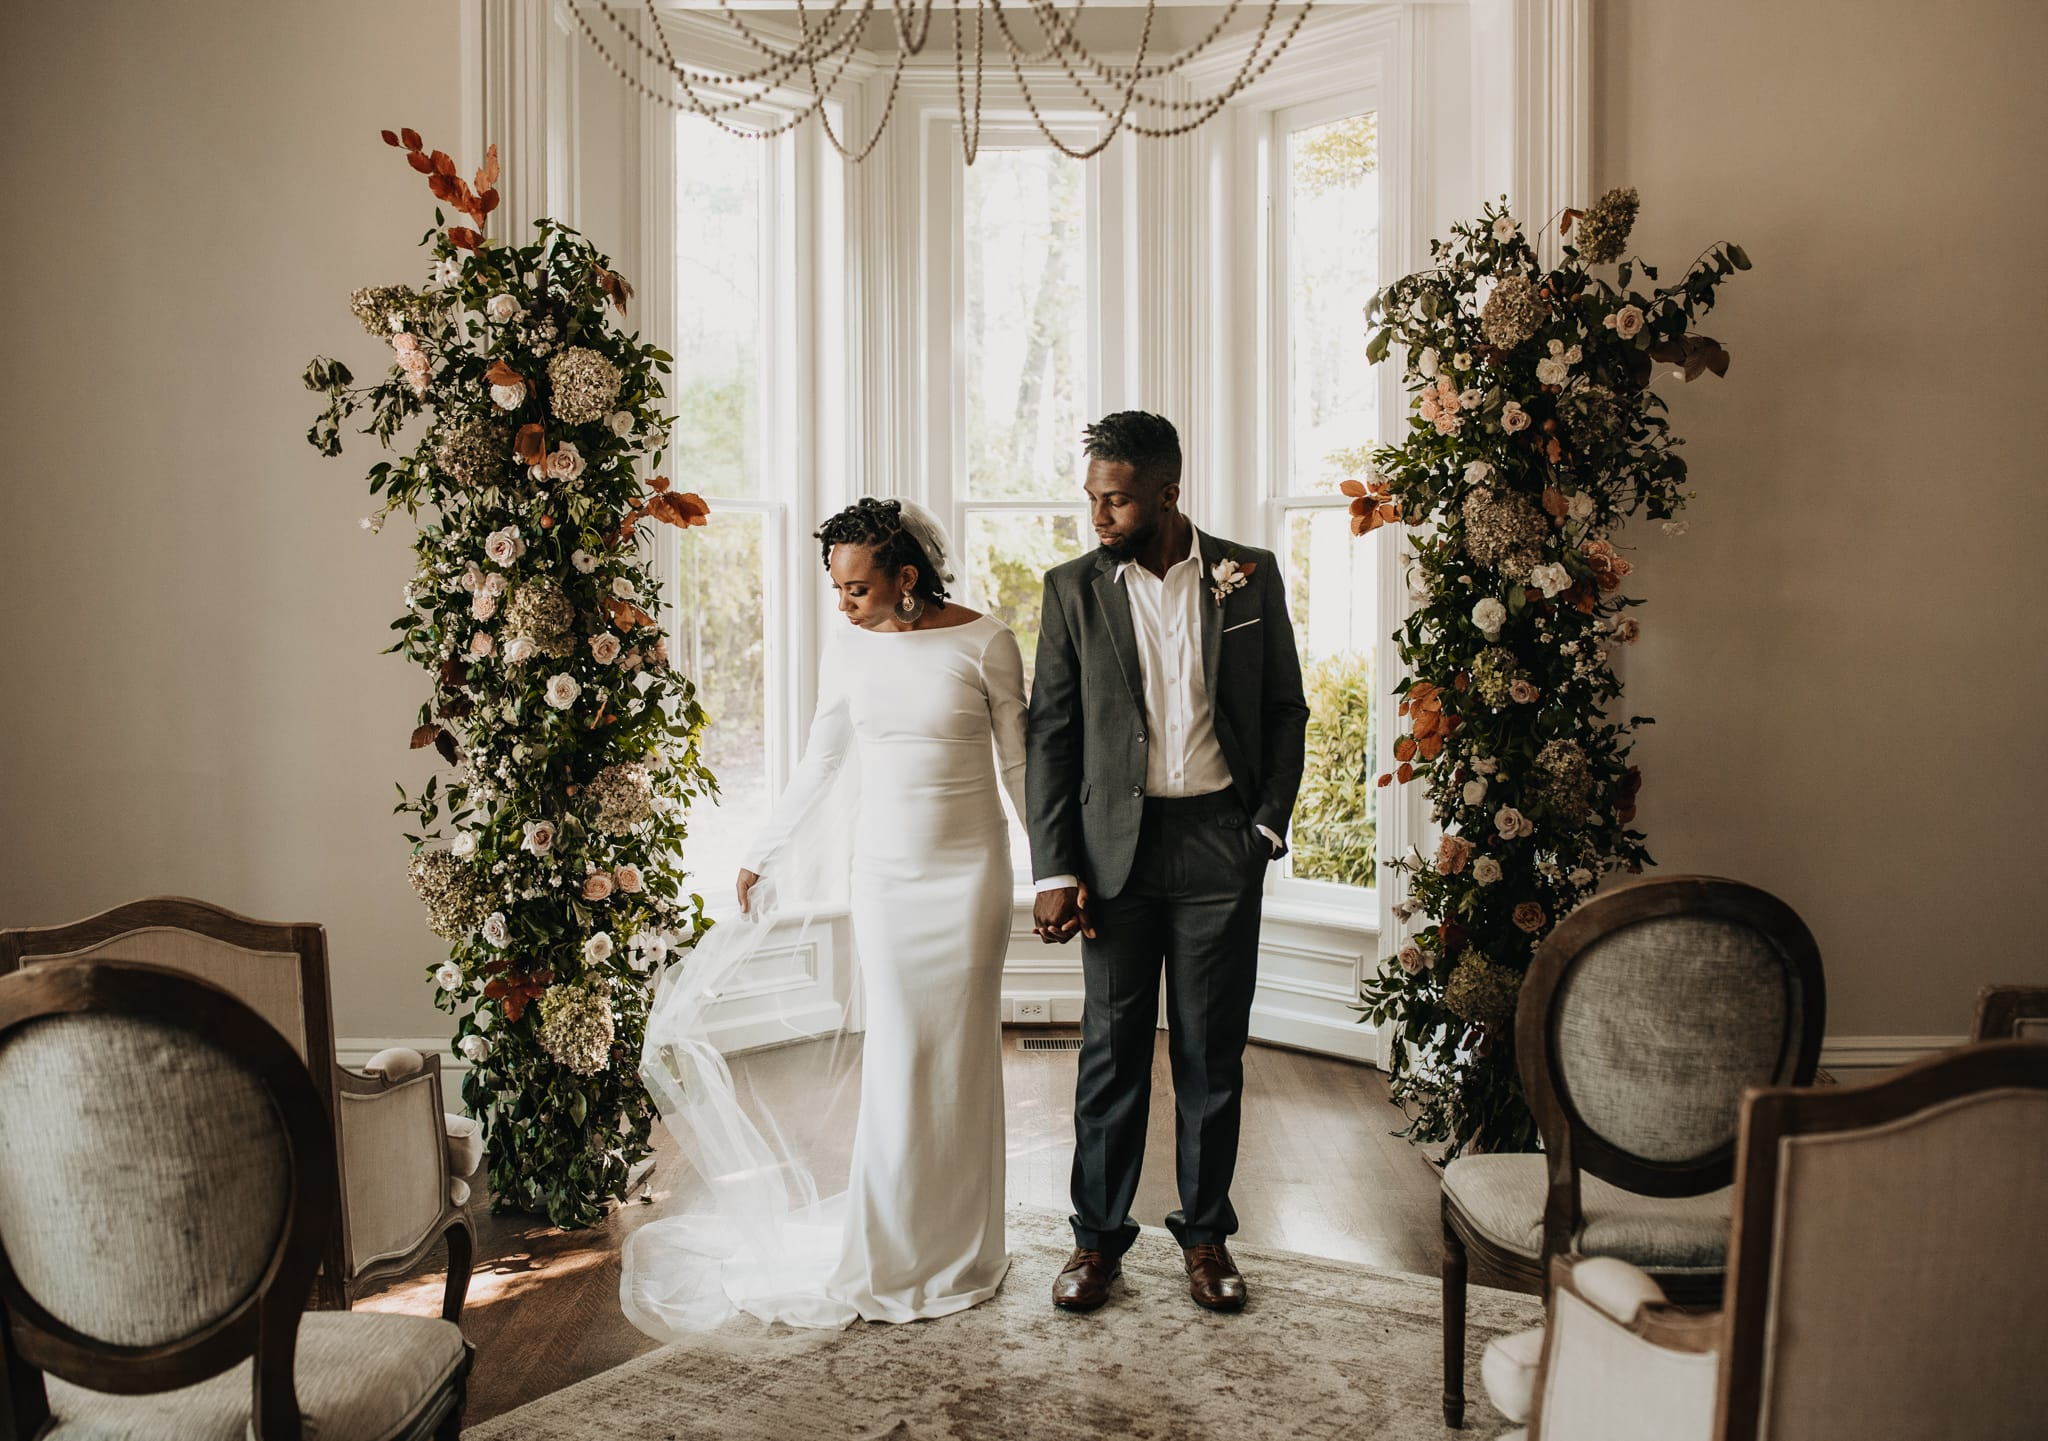 Bride and groom have their elopement wedding at McAlister-Leftwich House in Greensboro, North Carolina